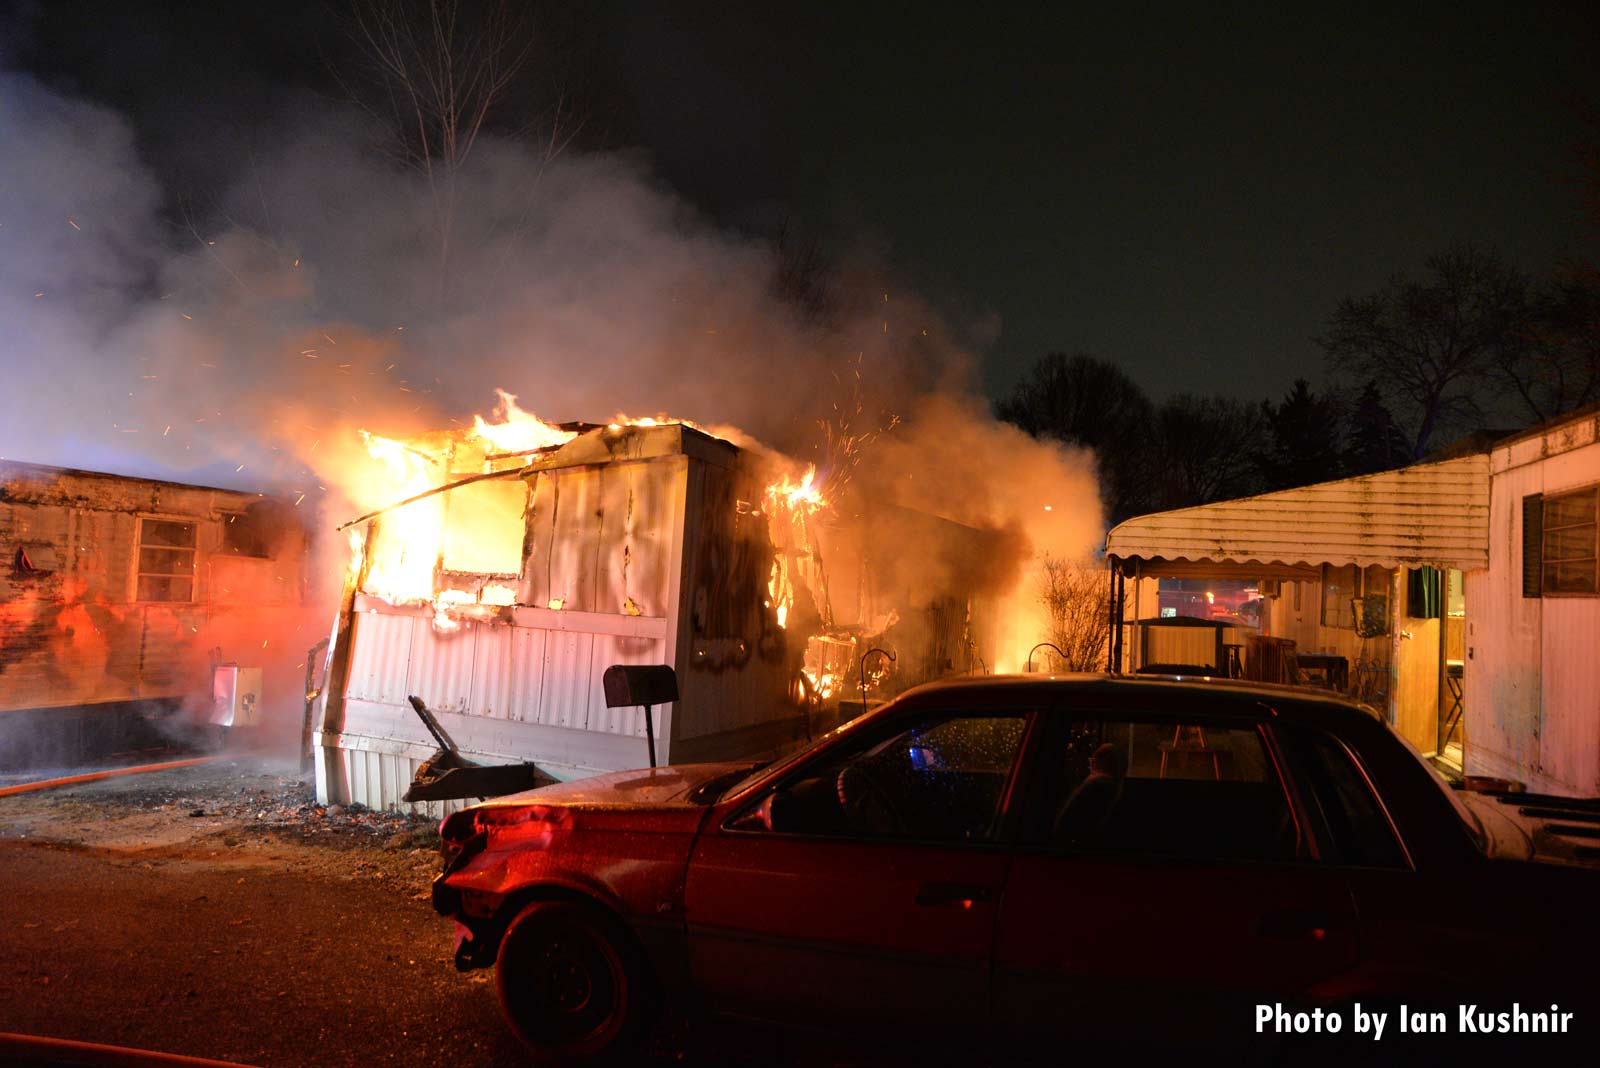 Flames shooting from a mobile home